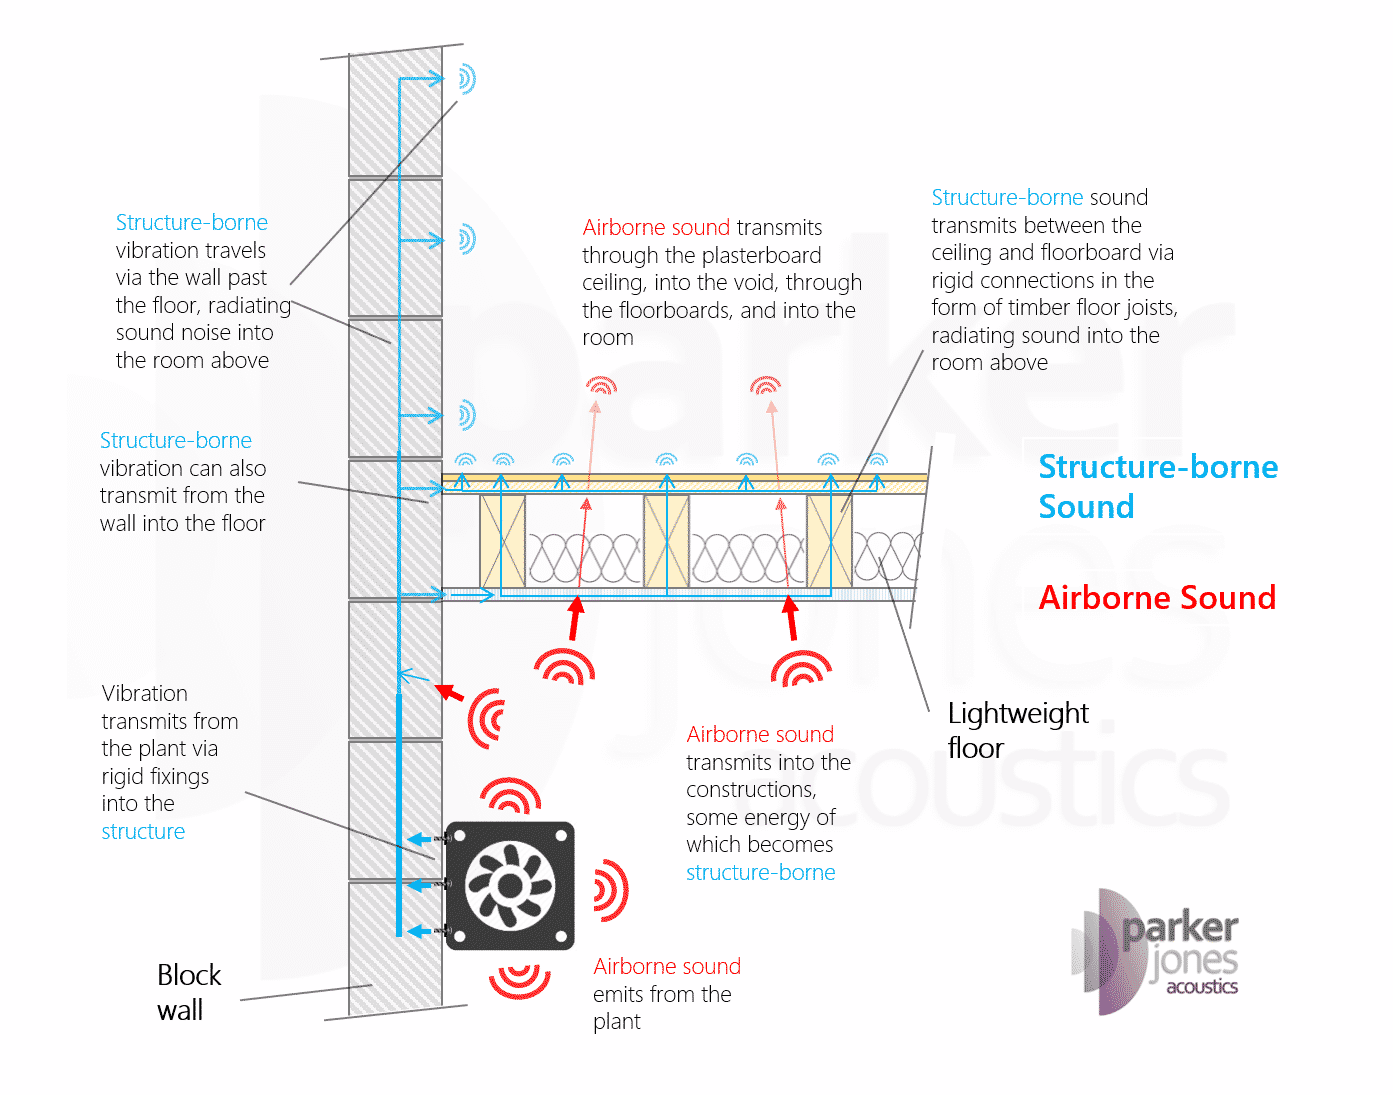 Sound insulation - airborne and structure-borne sound transmission. Simple diagram to explain this acoustic design concept.